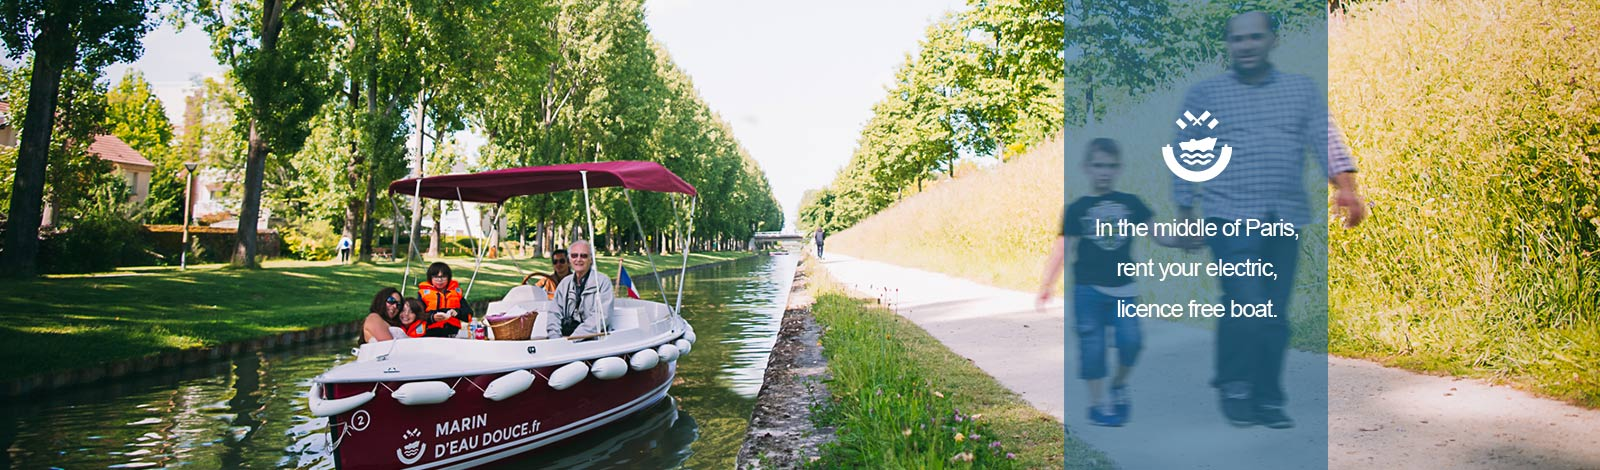 Sailing on quiet waterways aboard electric boat